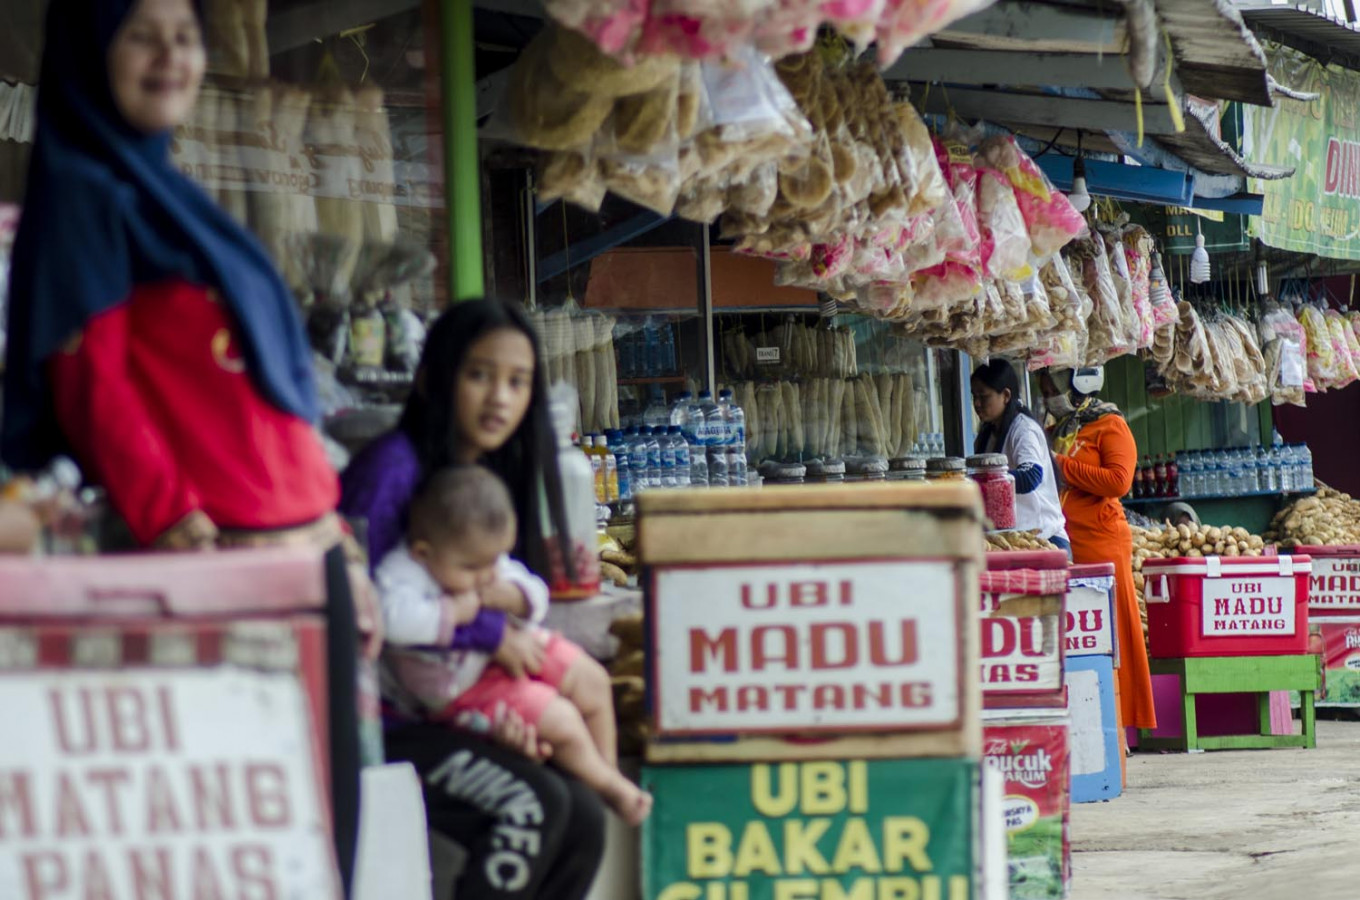 Bandung to close three markets after sellers tested positive for COVID-19